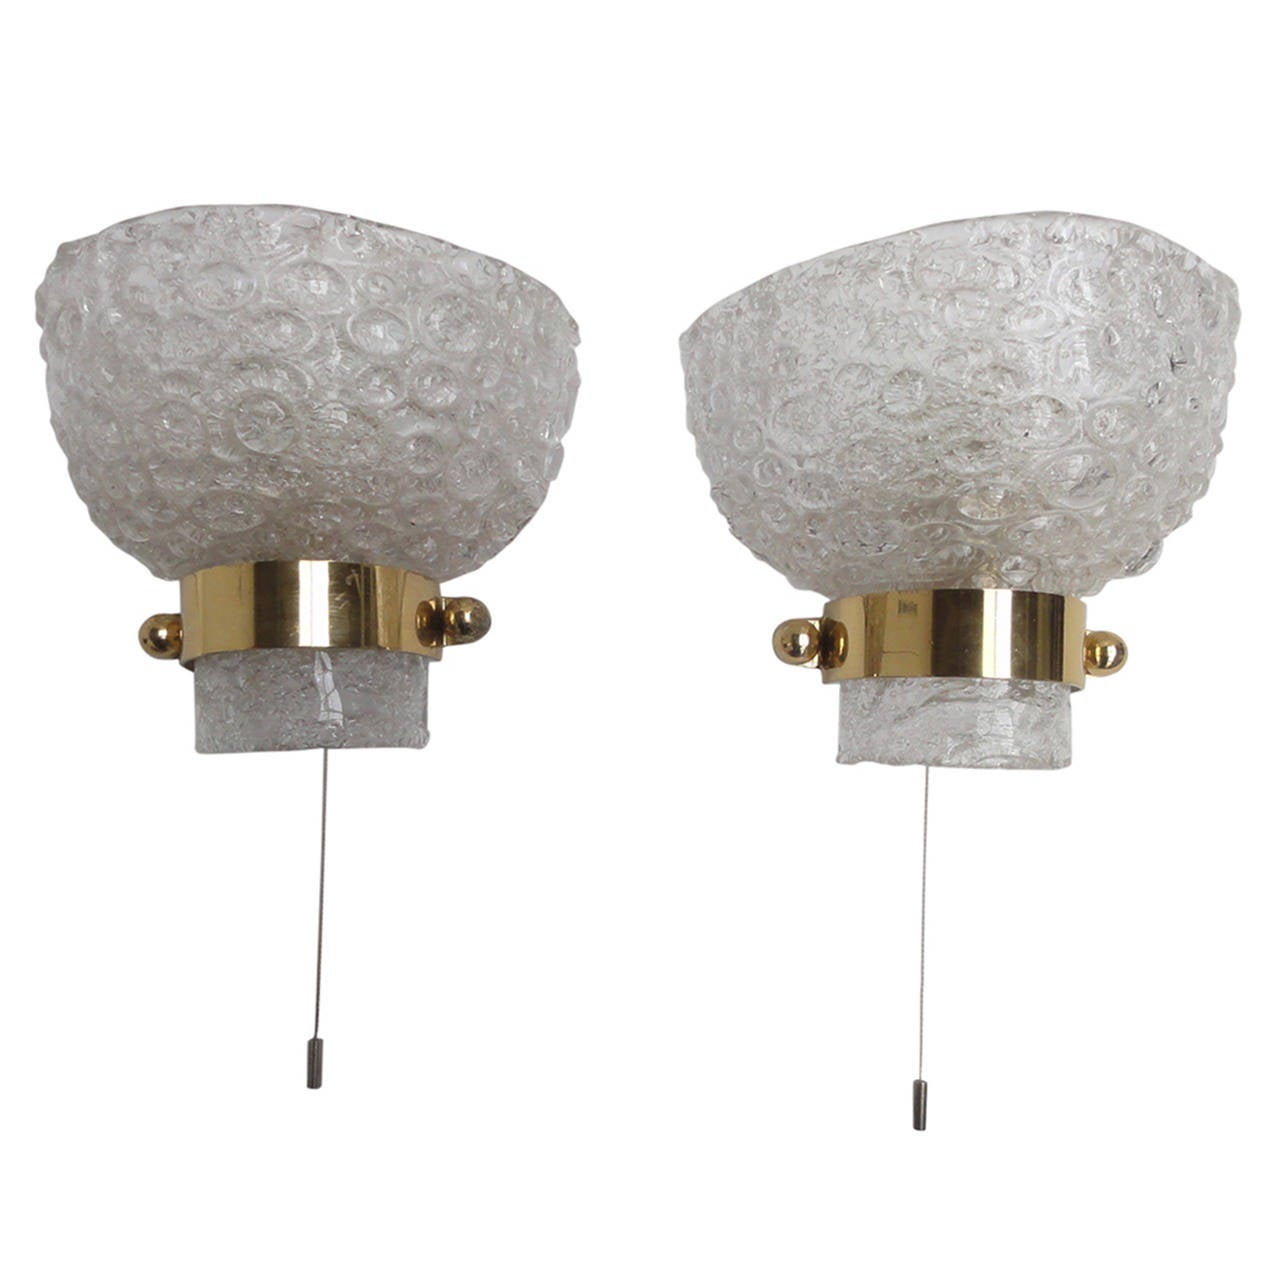 Textured Ice Crystal Glass & Brass Wall Sconces by Kaiser Germany 1960's